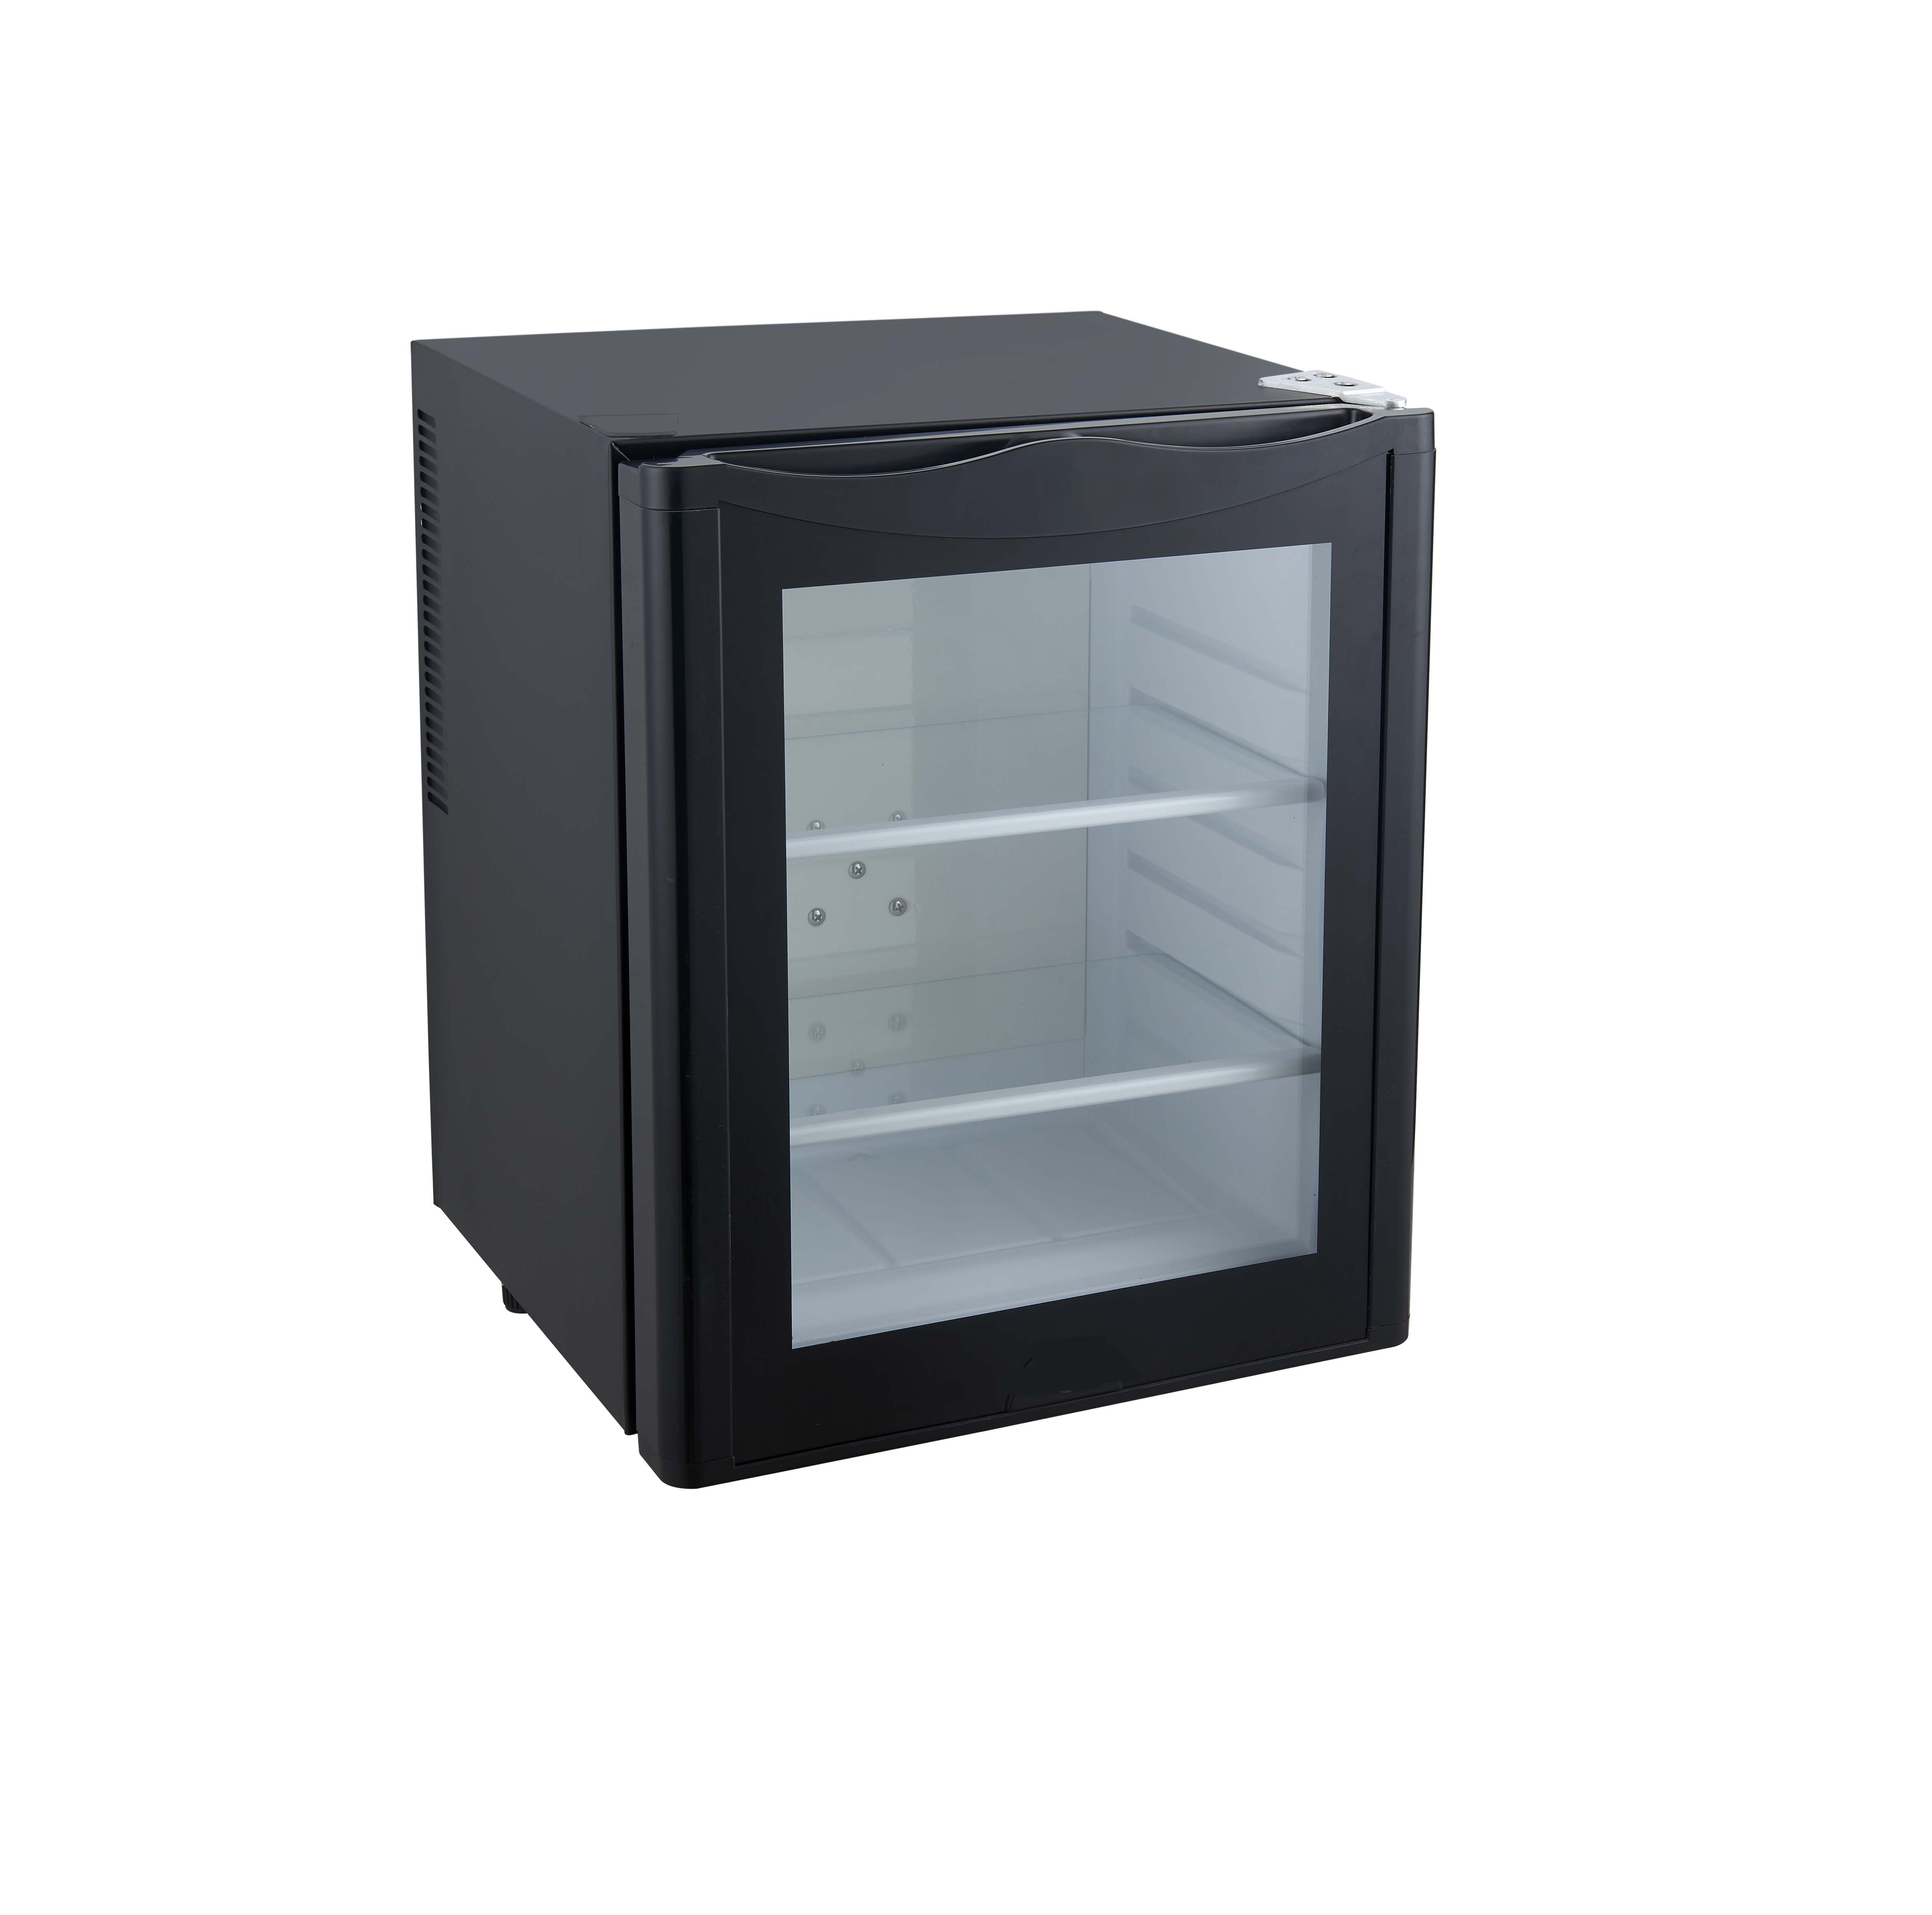 BC-25A-G silent refrigerator